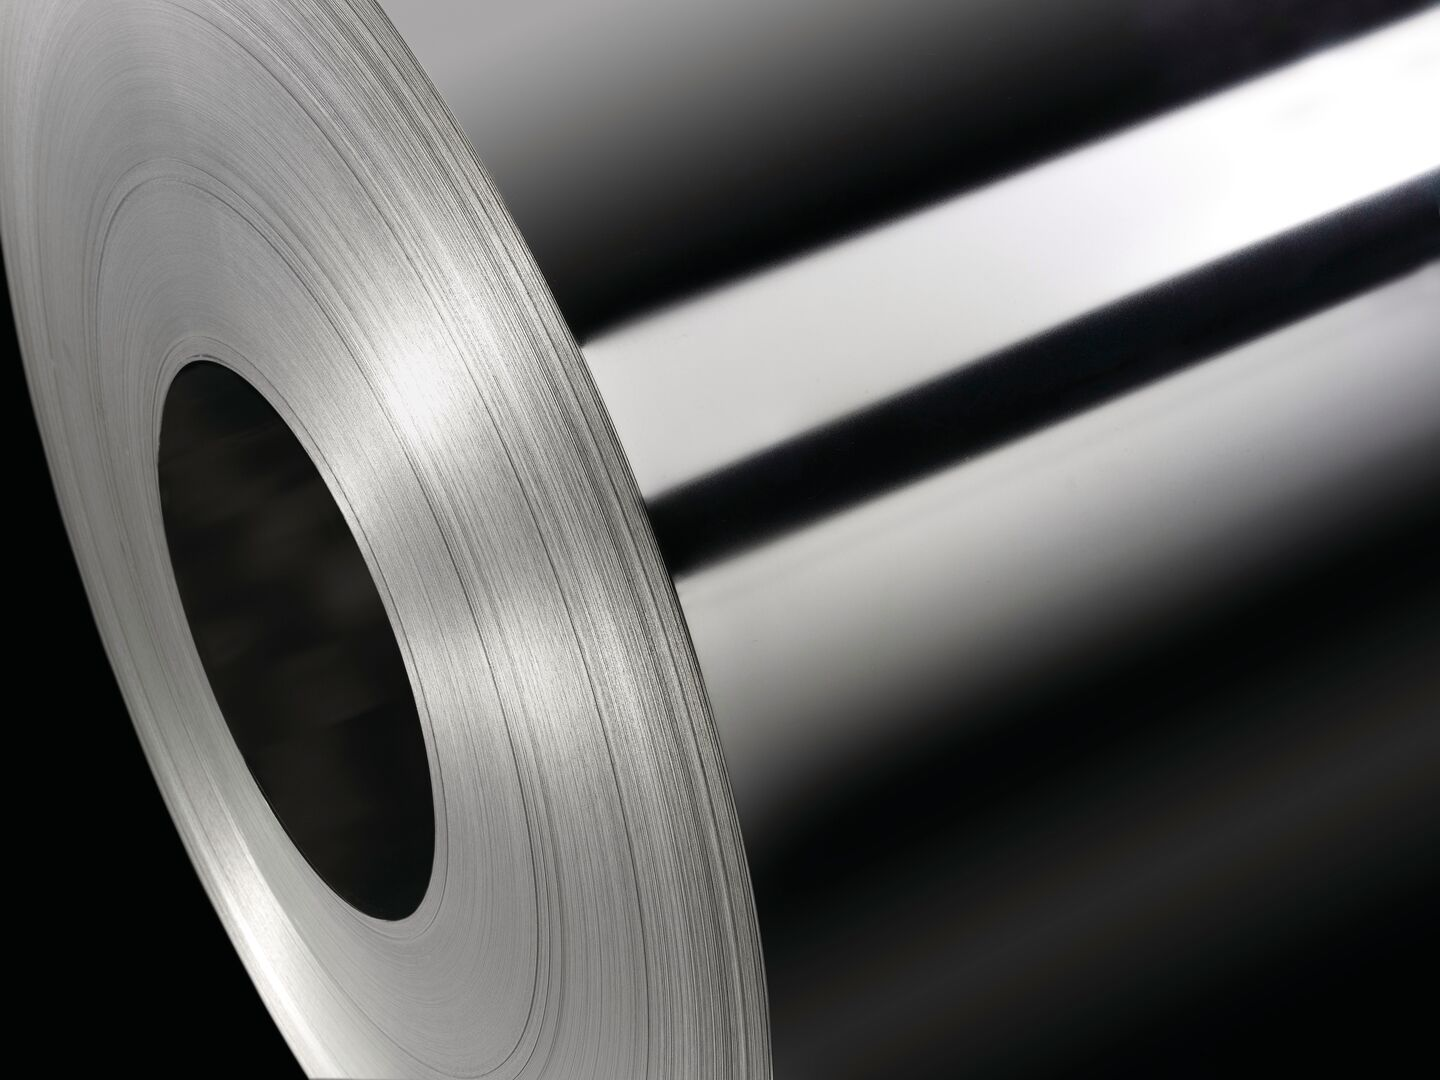 We supply a wide range of proven tinplate products for applications